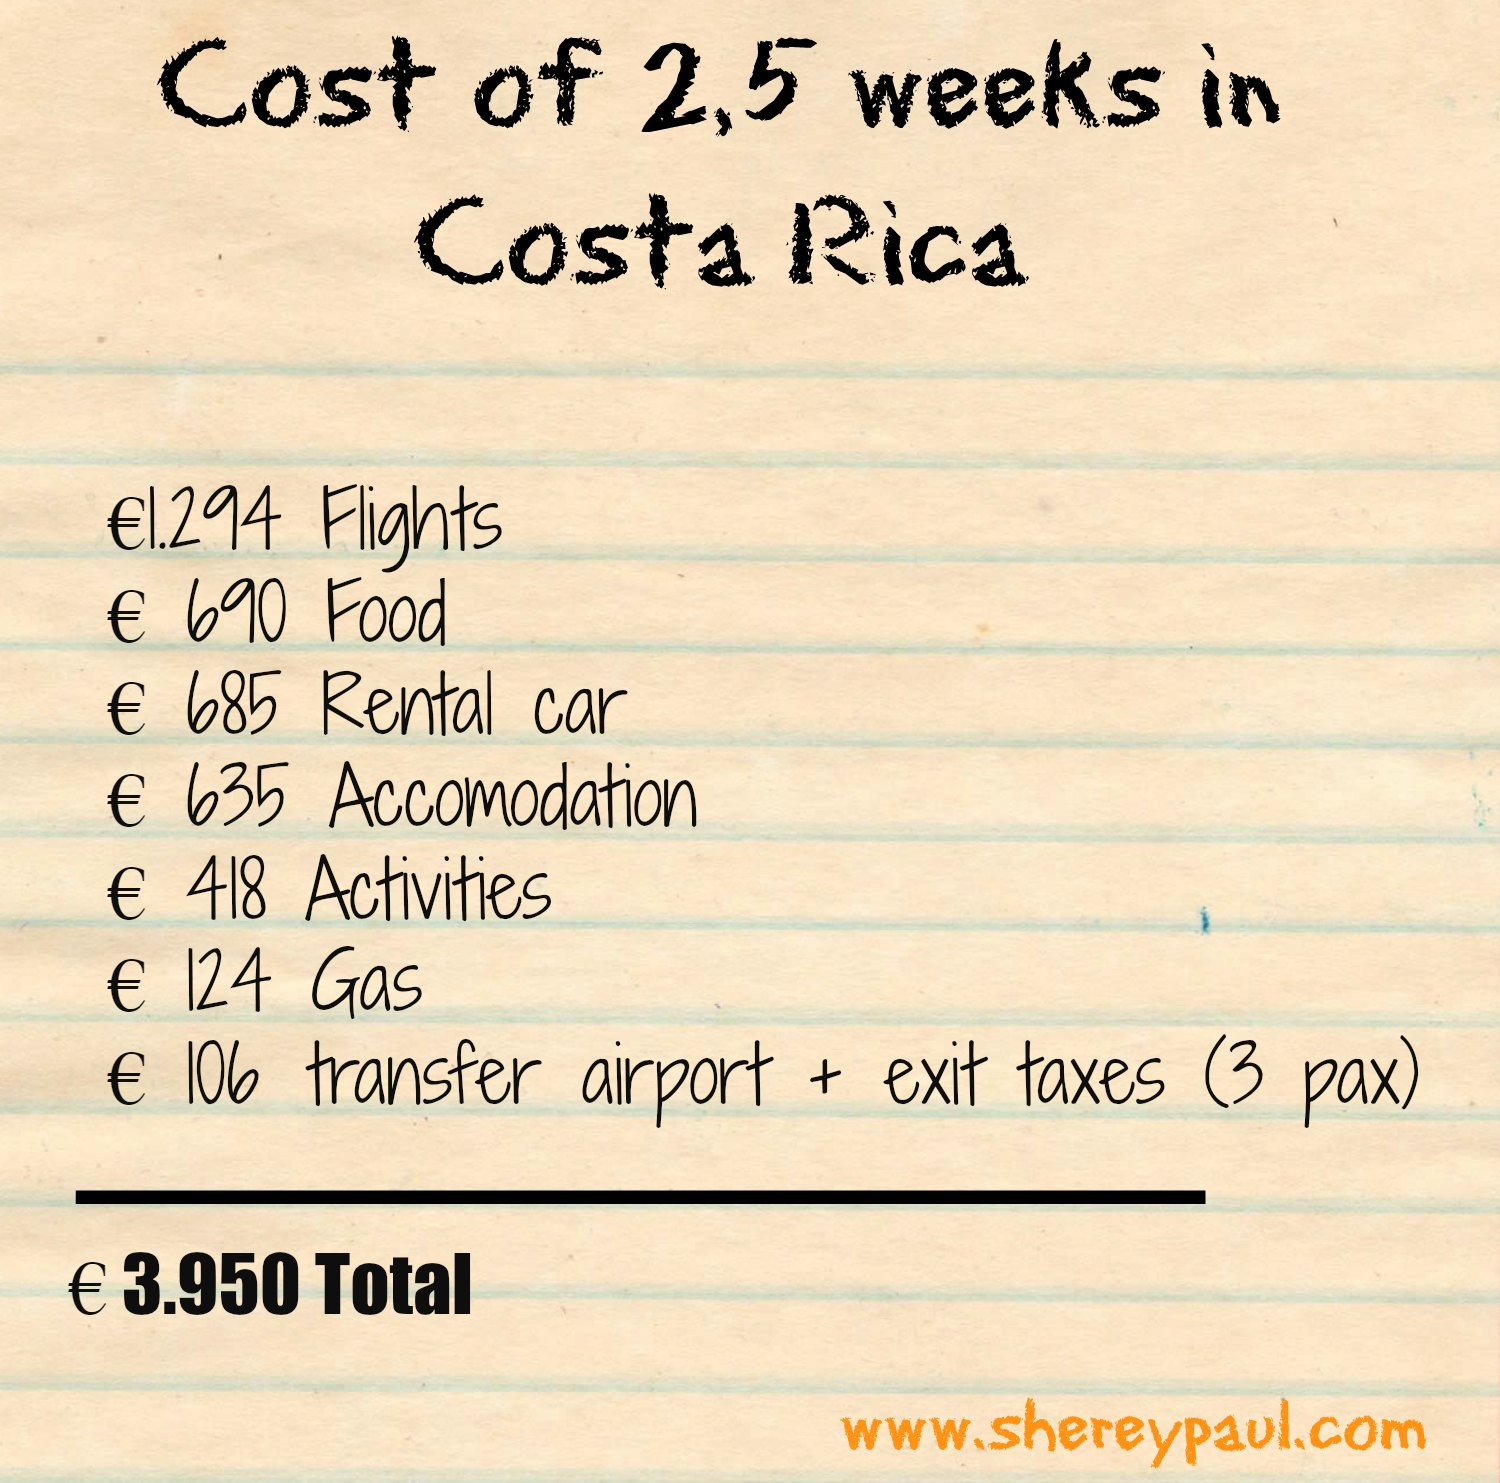 cost 2,5 weeks in costa rica